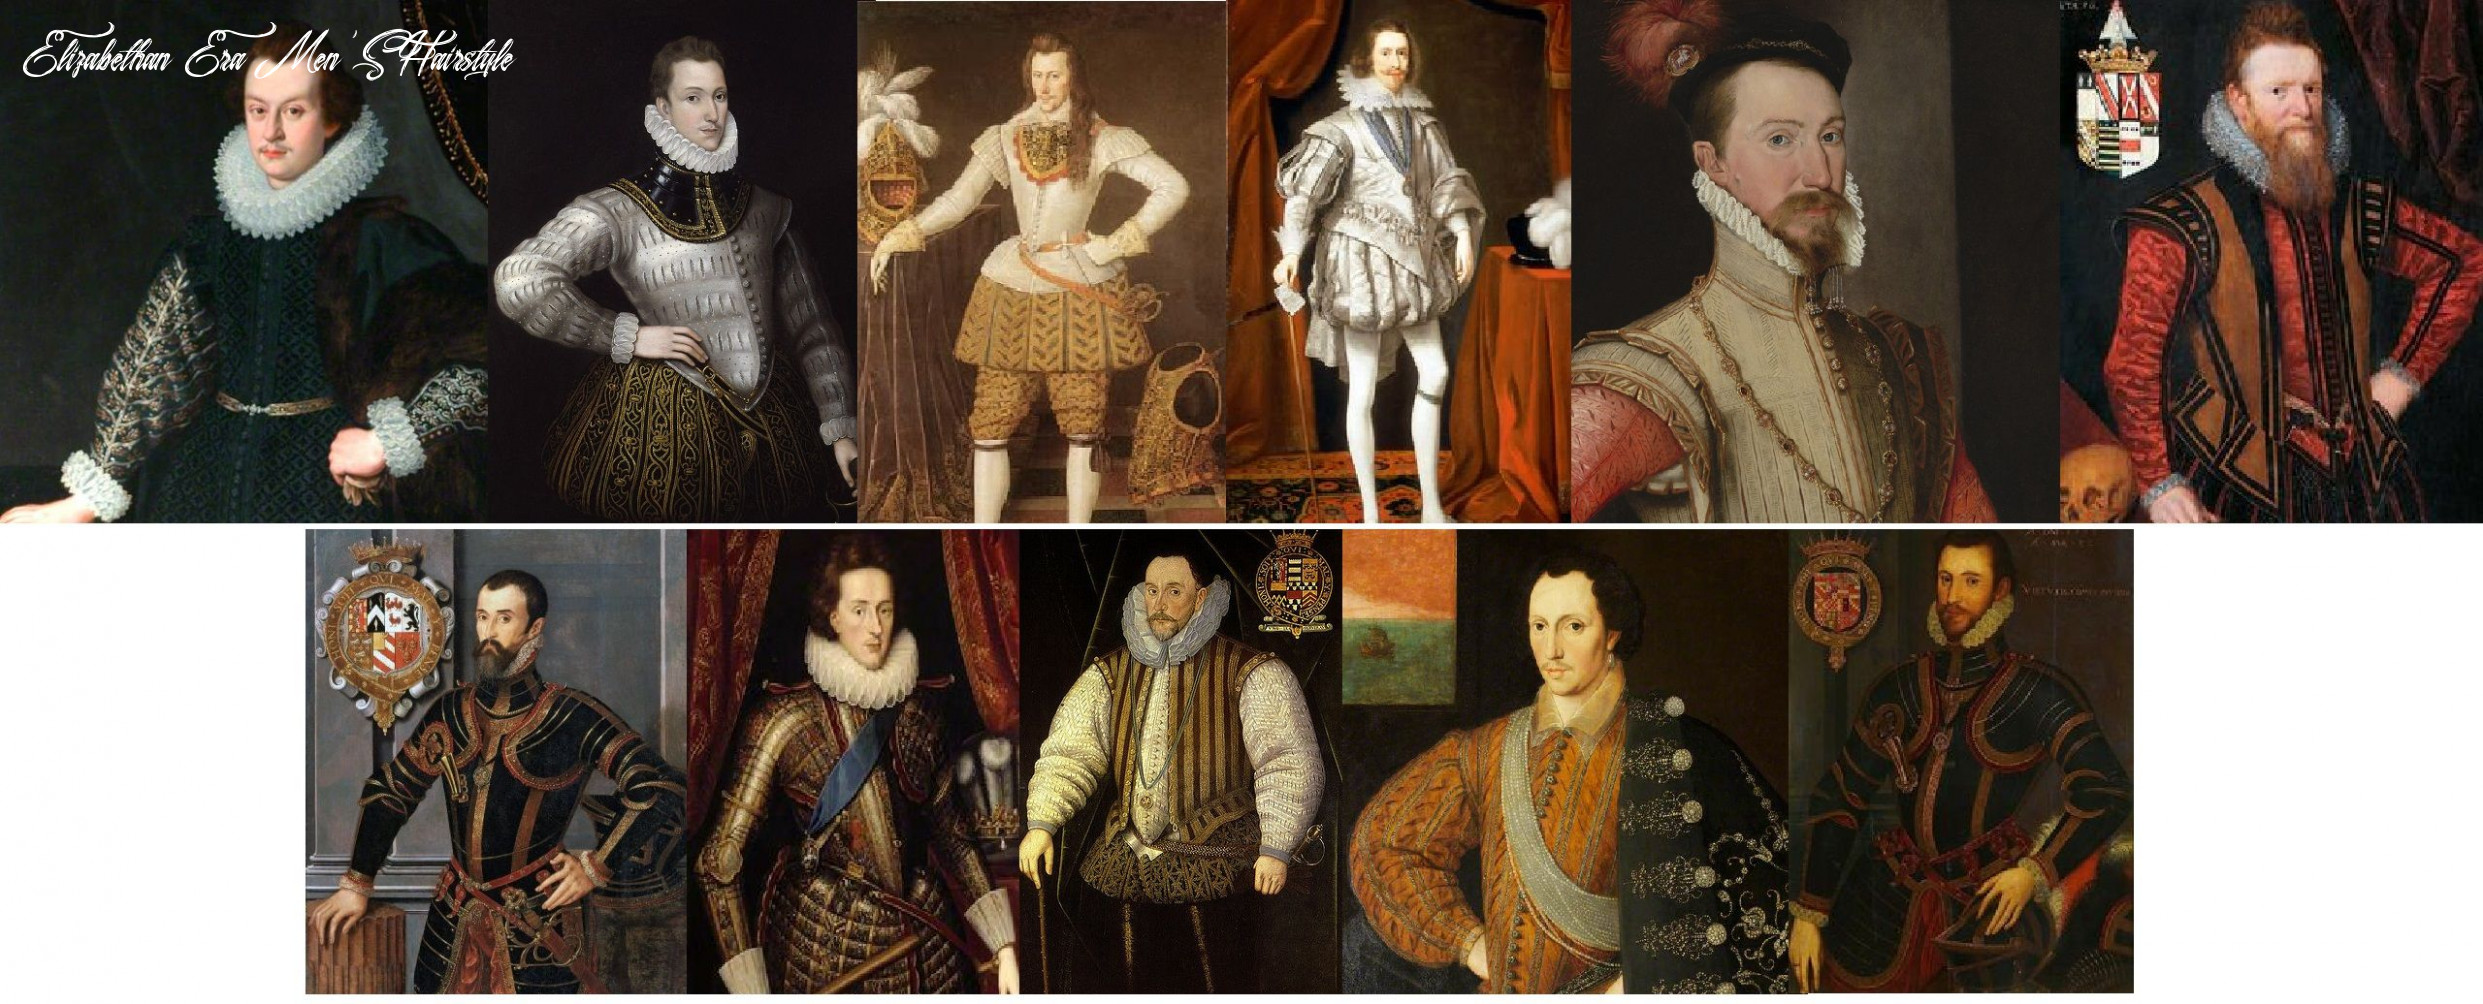 Tudor and elizabethan hair styles for men were jus as important as